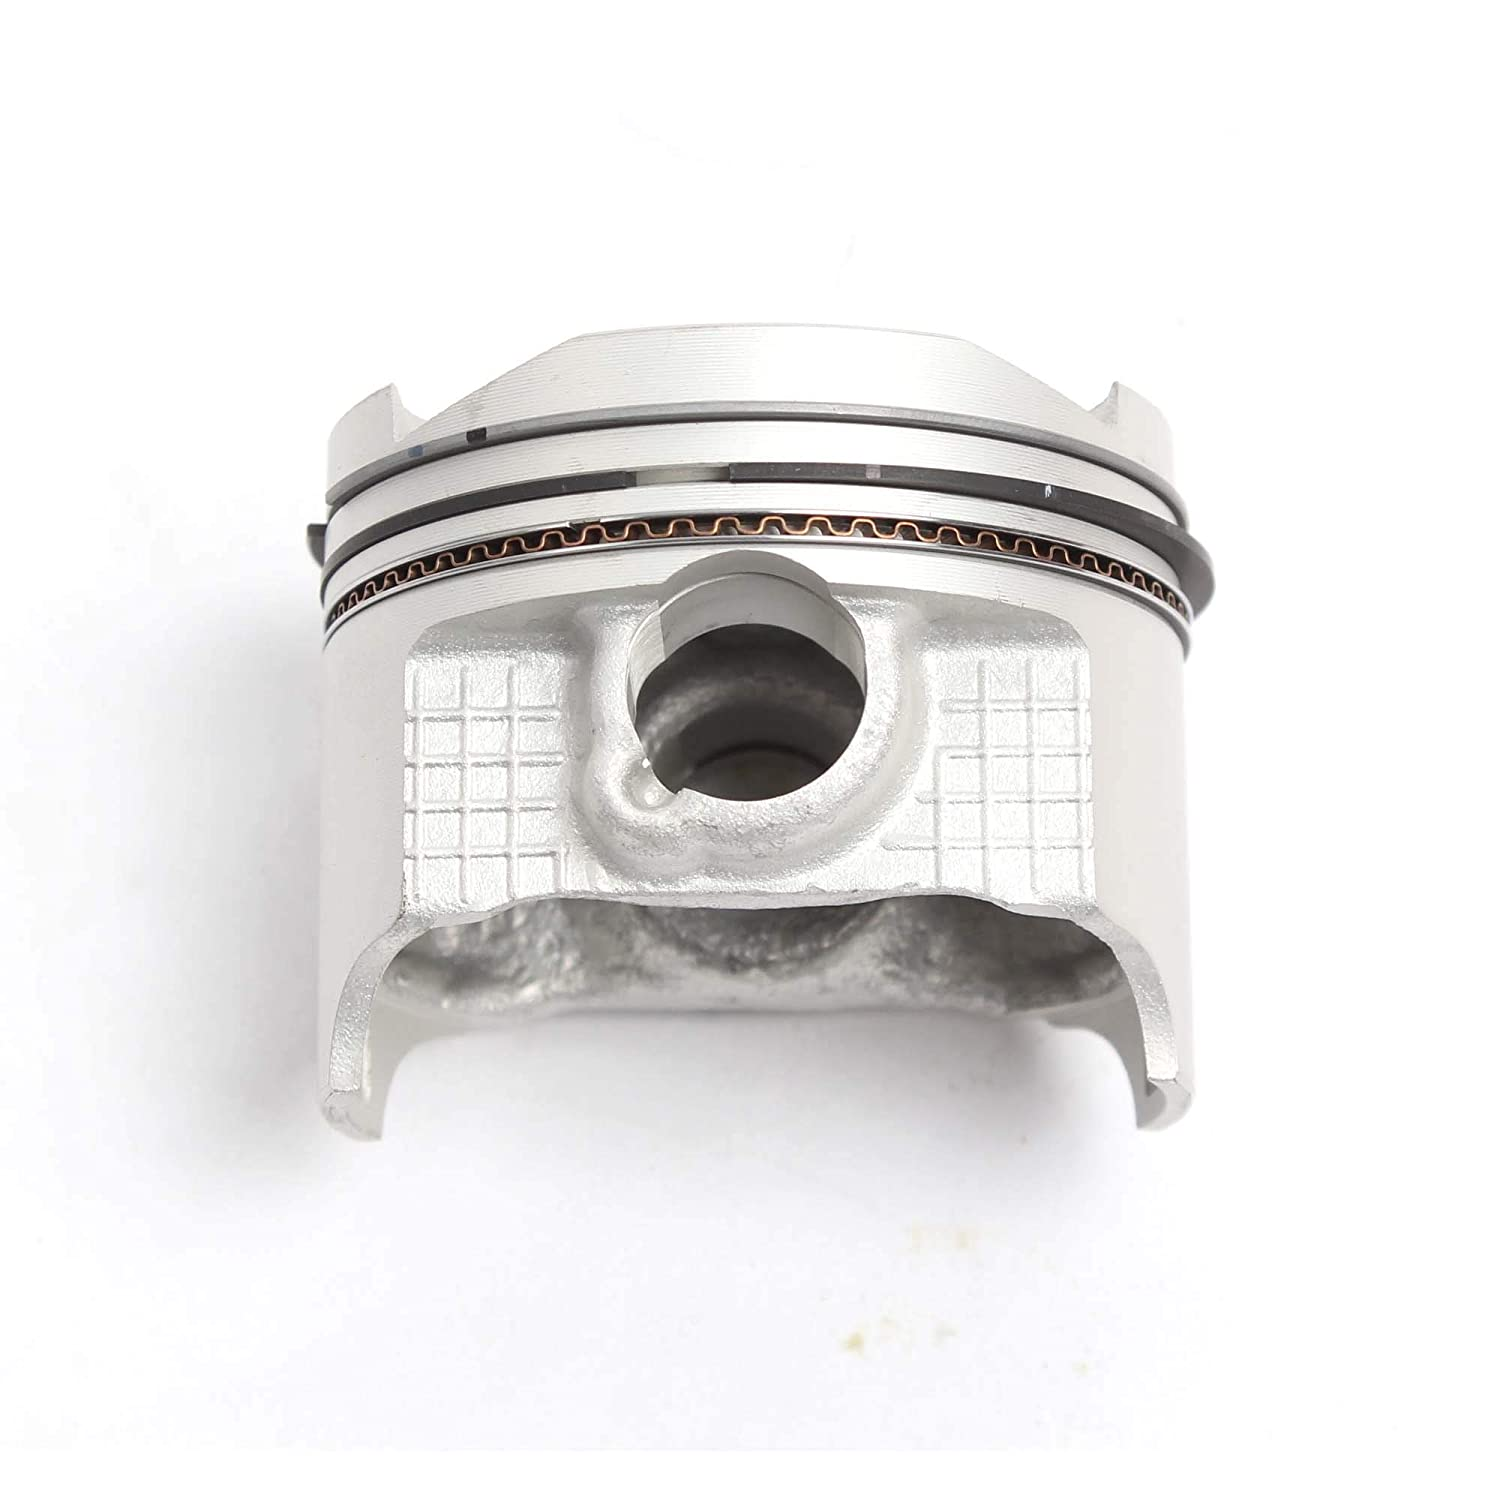 Genuine OEM Piston with Ring Assembly for Hyosung ATK UM Kasinski GT125 GT125R GT250 GT250R GV250 RT125D